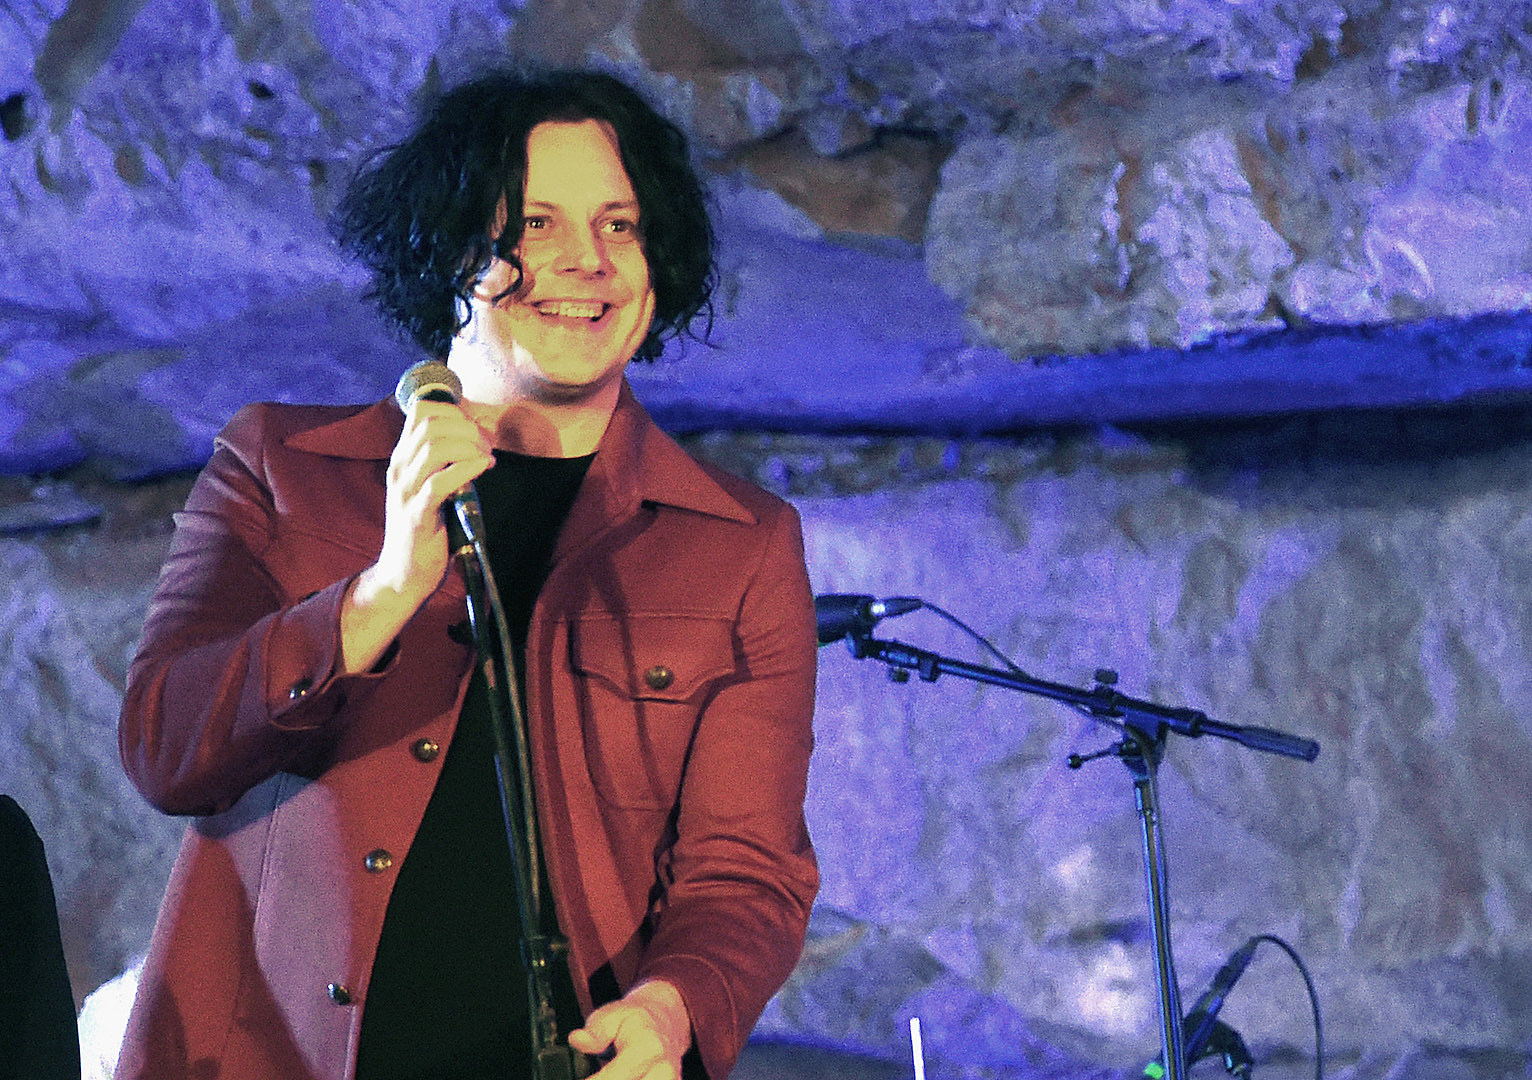 Jack White Shares 'Boarding House Reach' Solo Album Details + Two New Songs